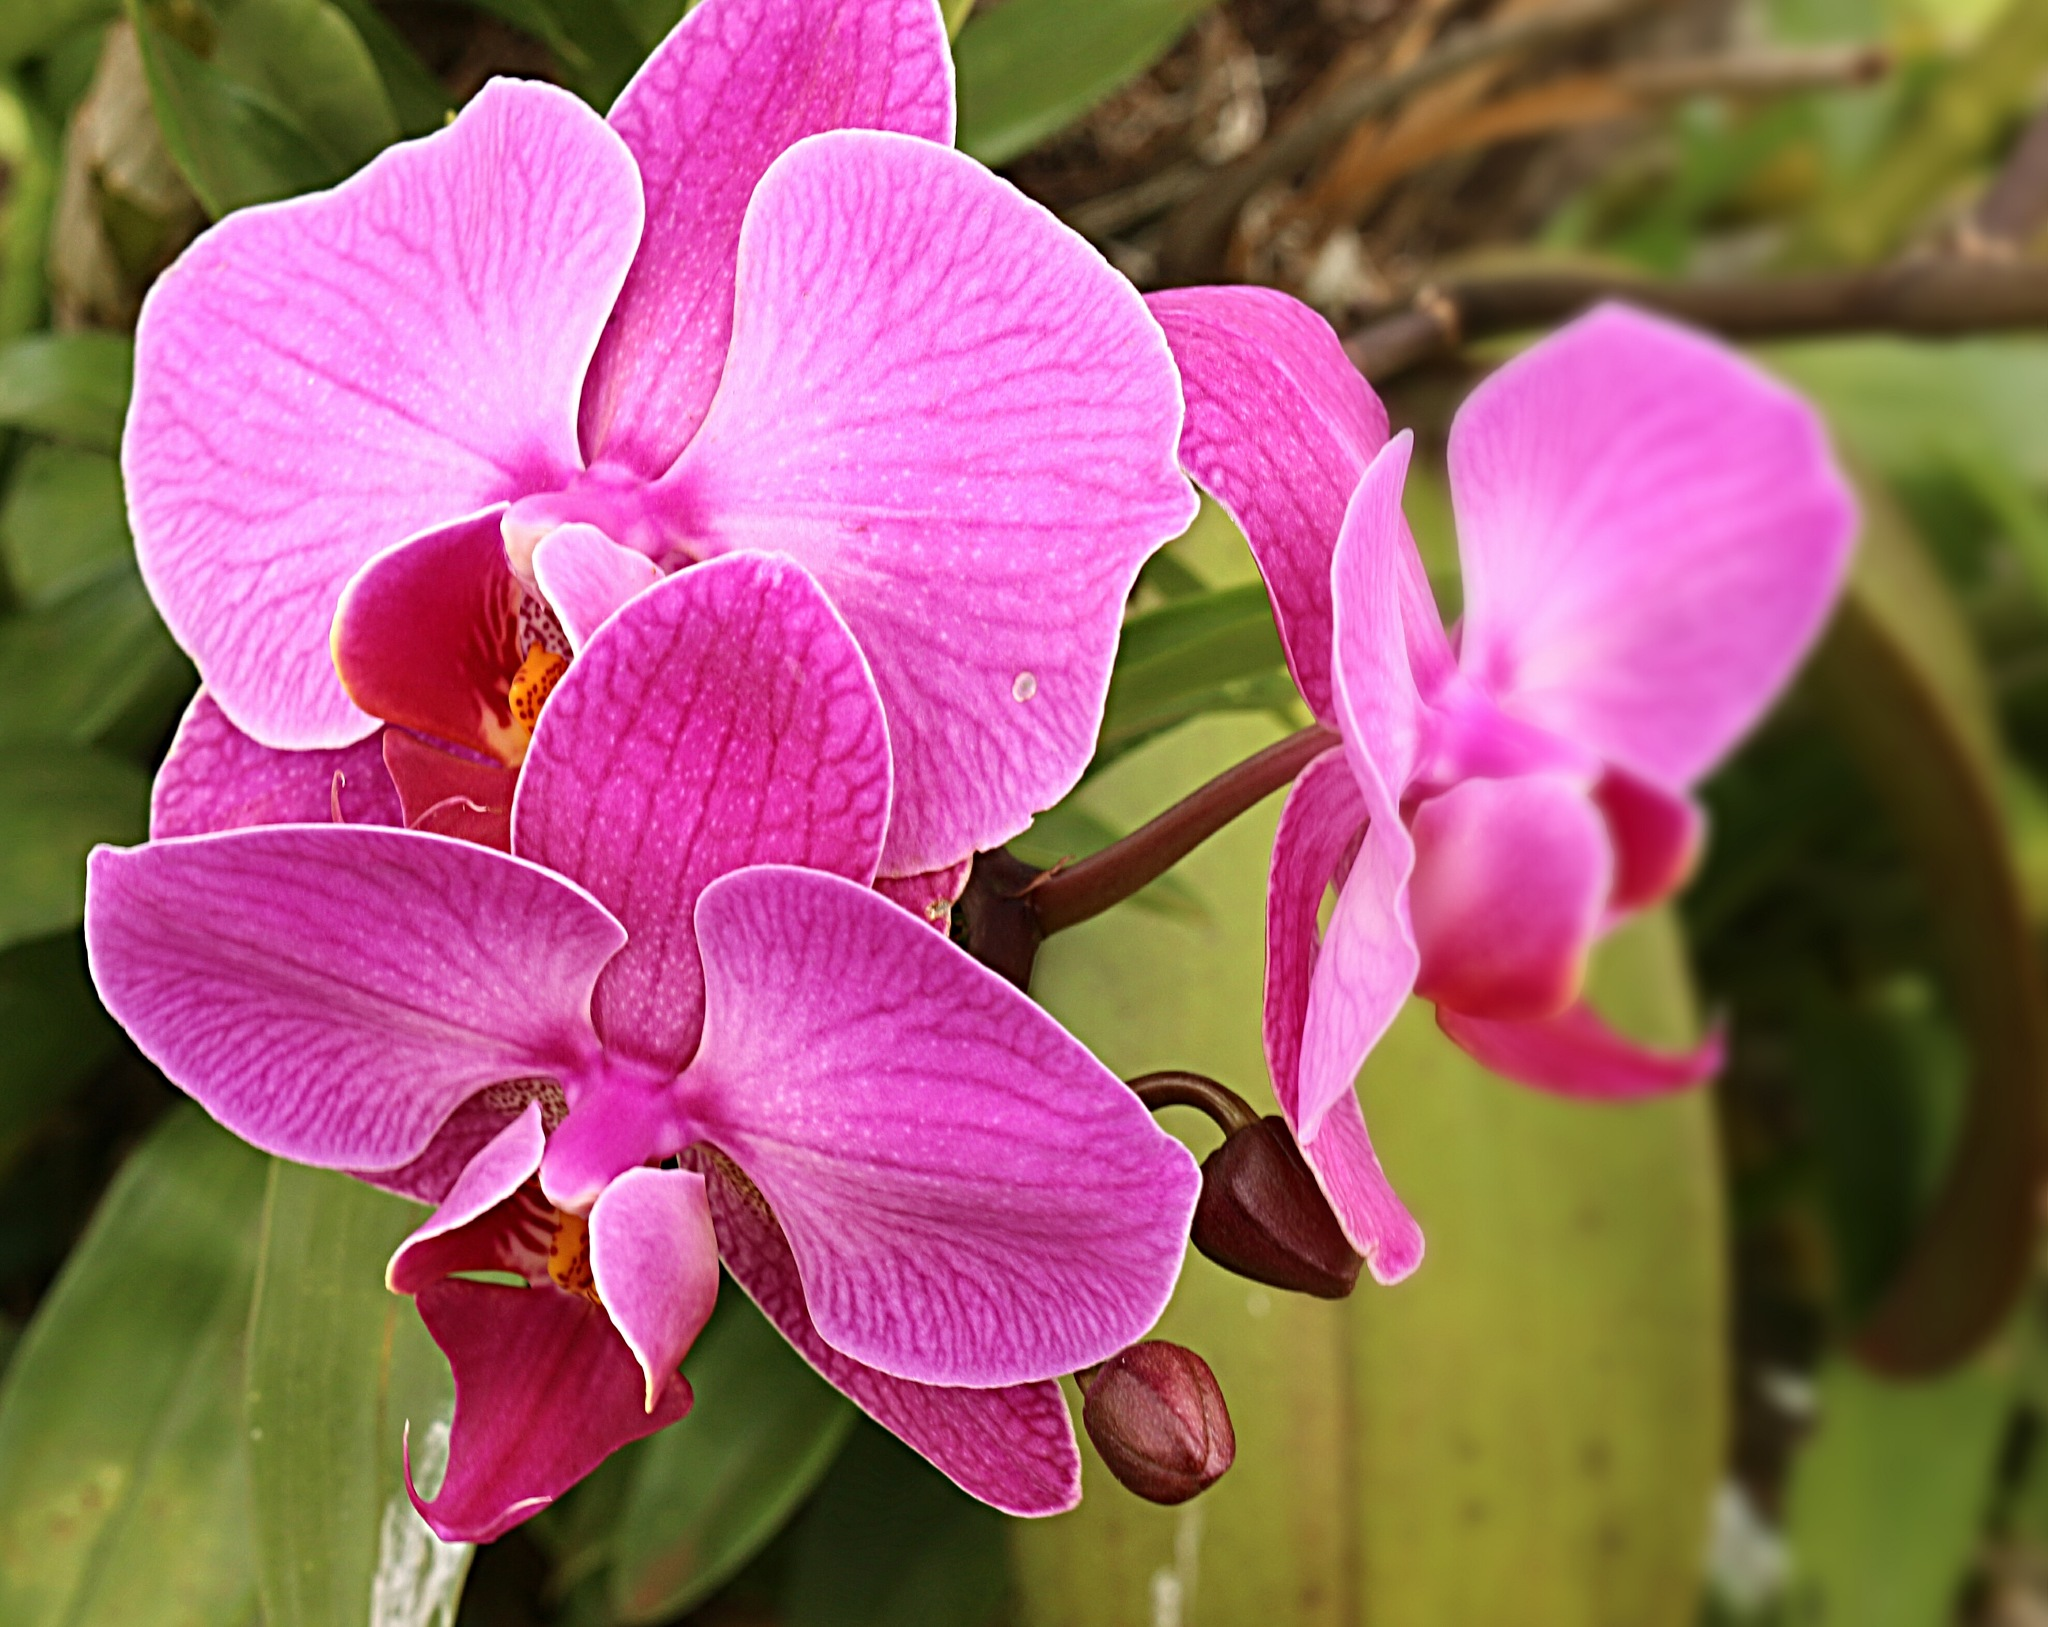 Phalaenopsis orchid by Sirlei